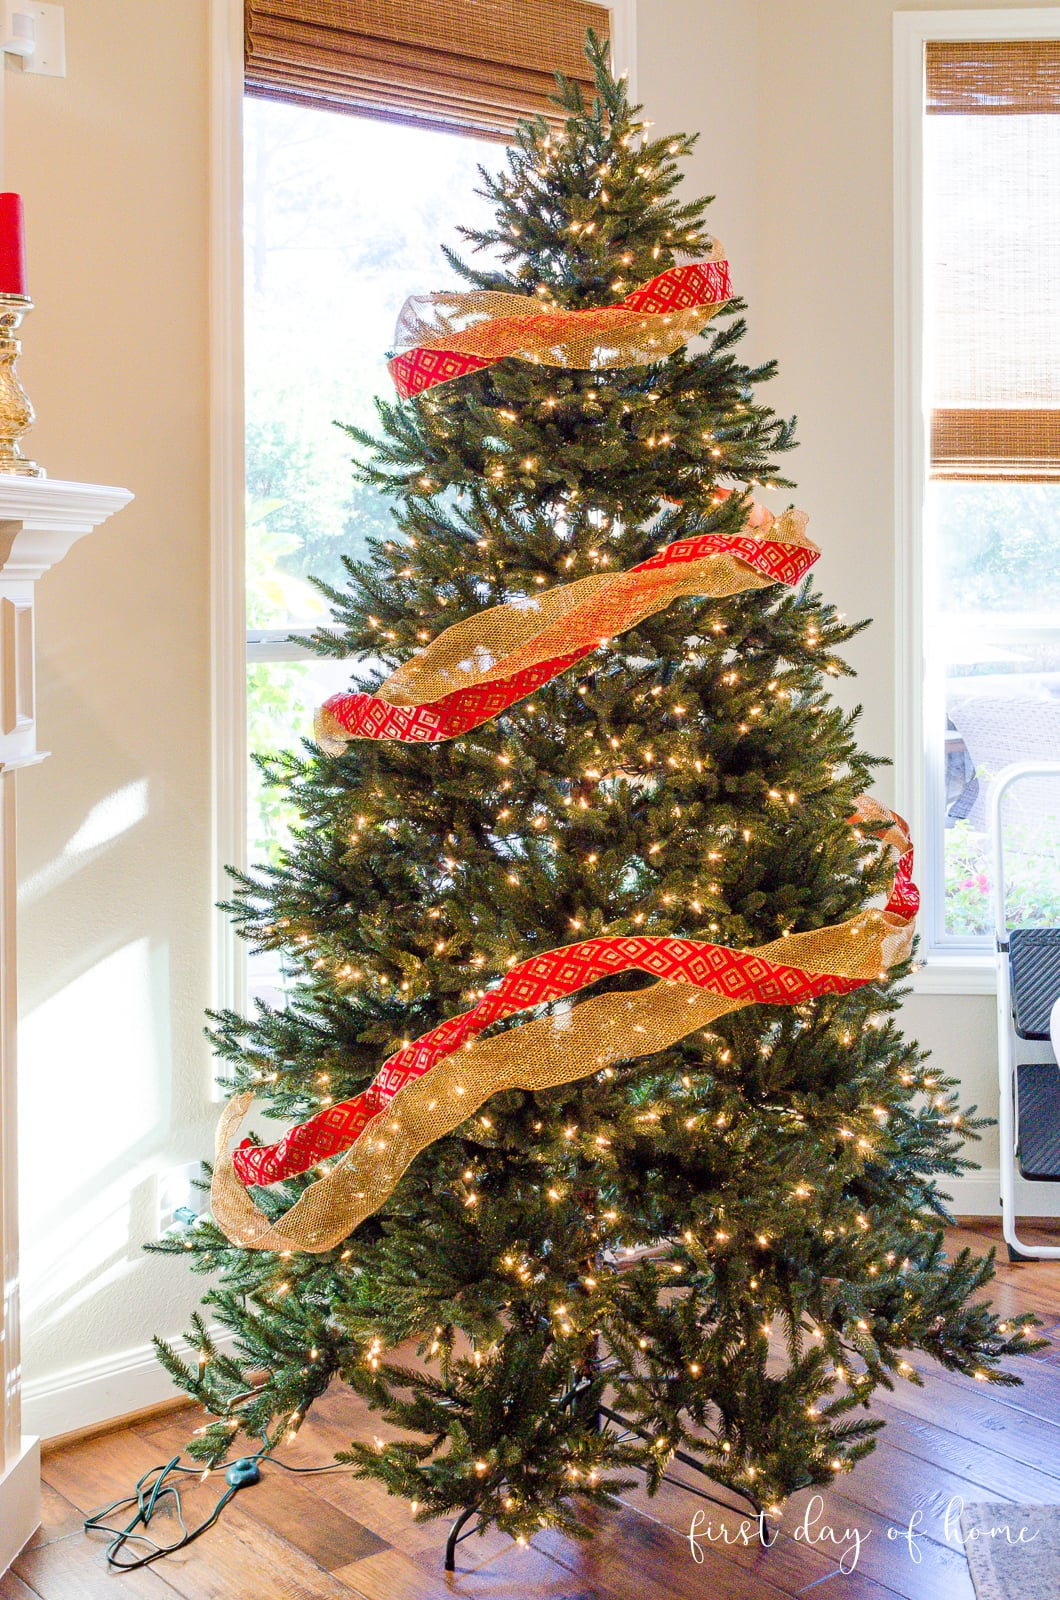 Christmas tree with a red ribbon and gold ribbon spiraling down from the top